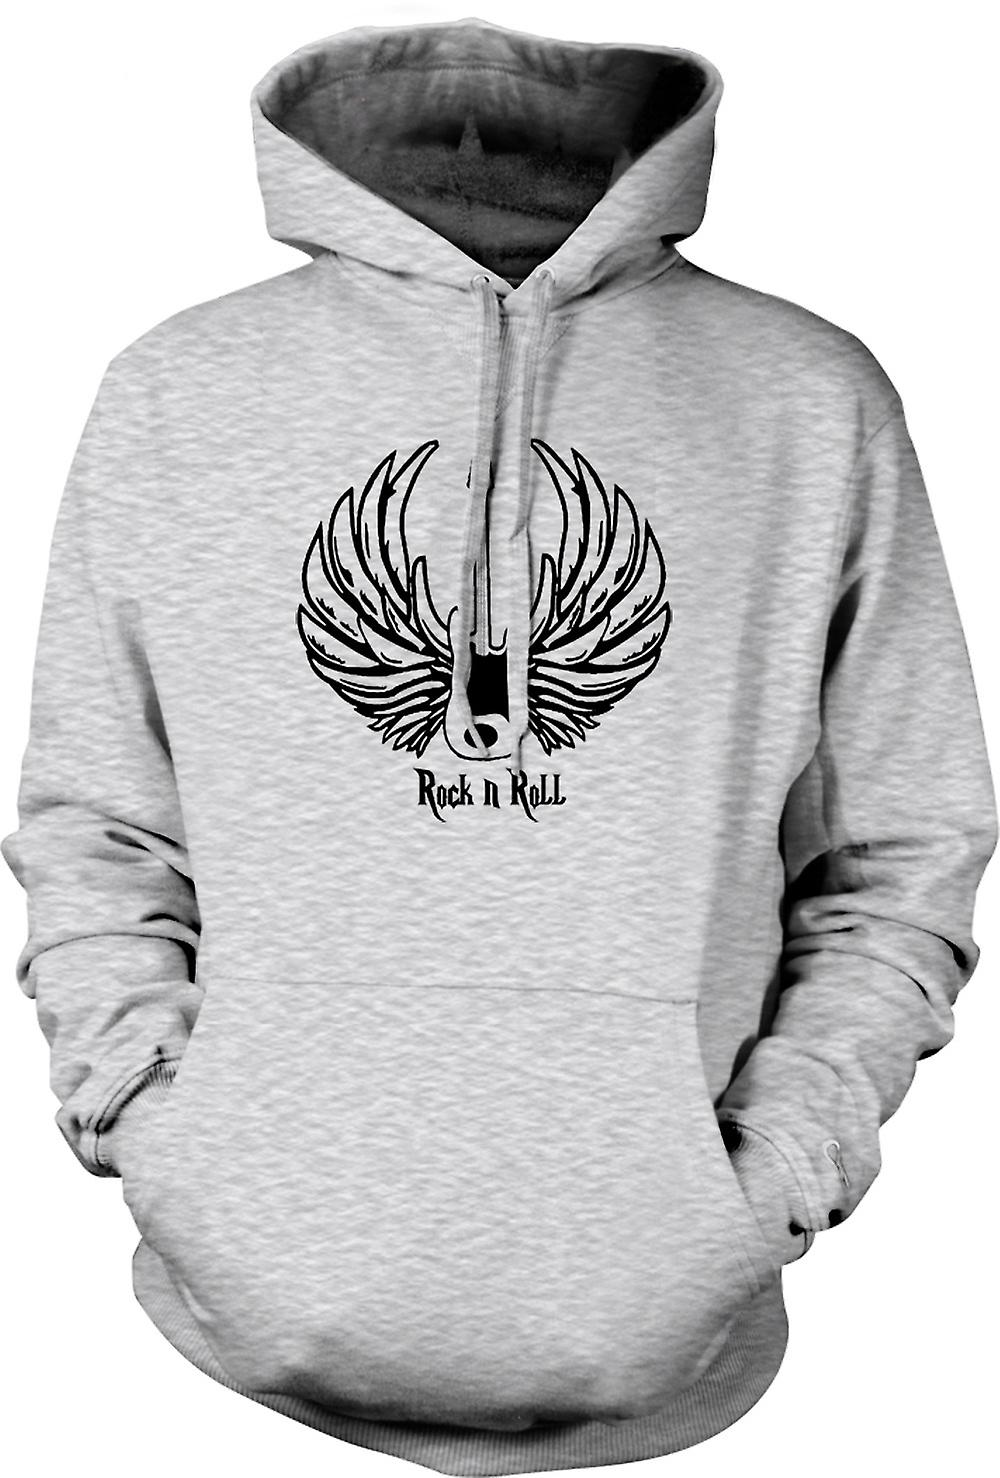 Mens Hoodie - Rock n Roll - Gitarre Wings - Musik